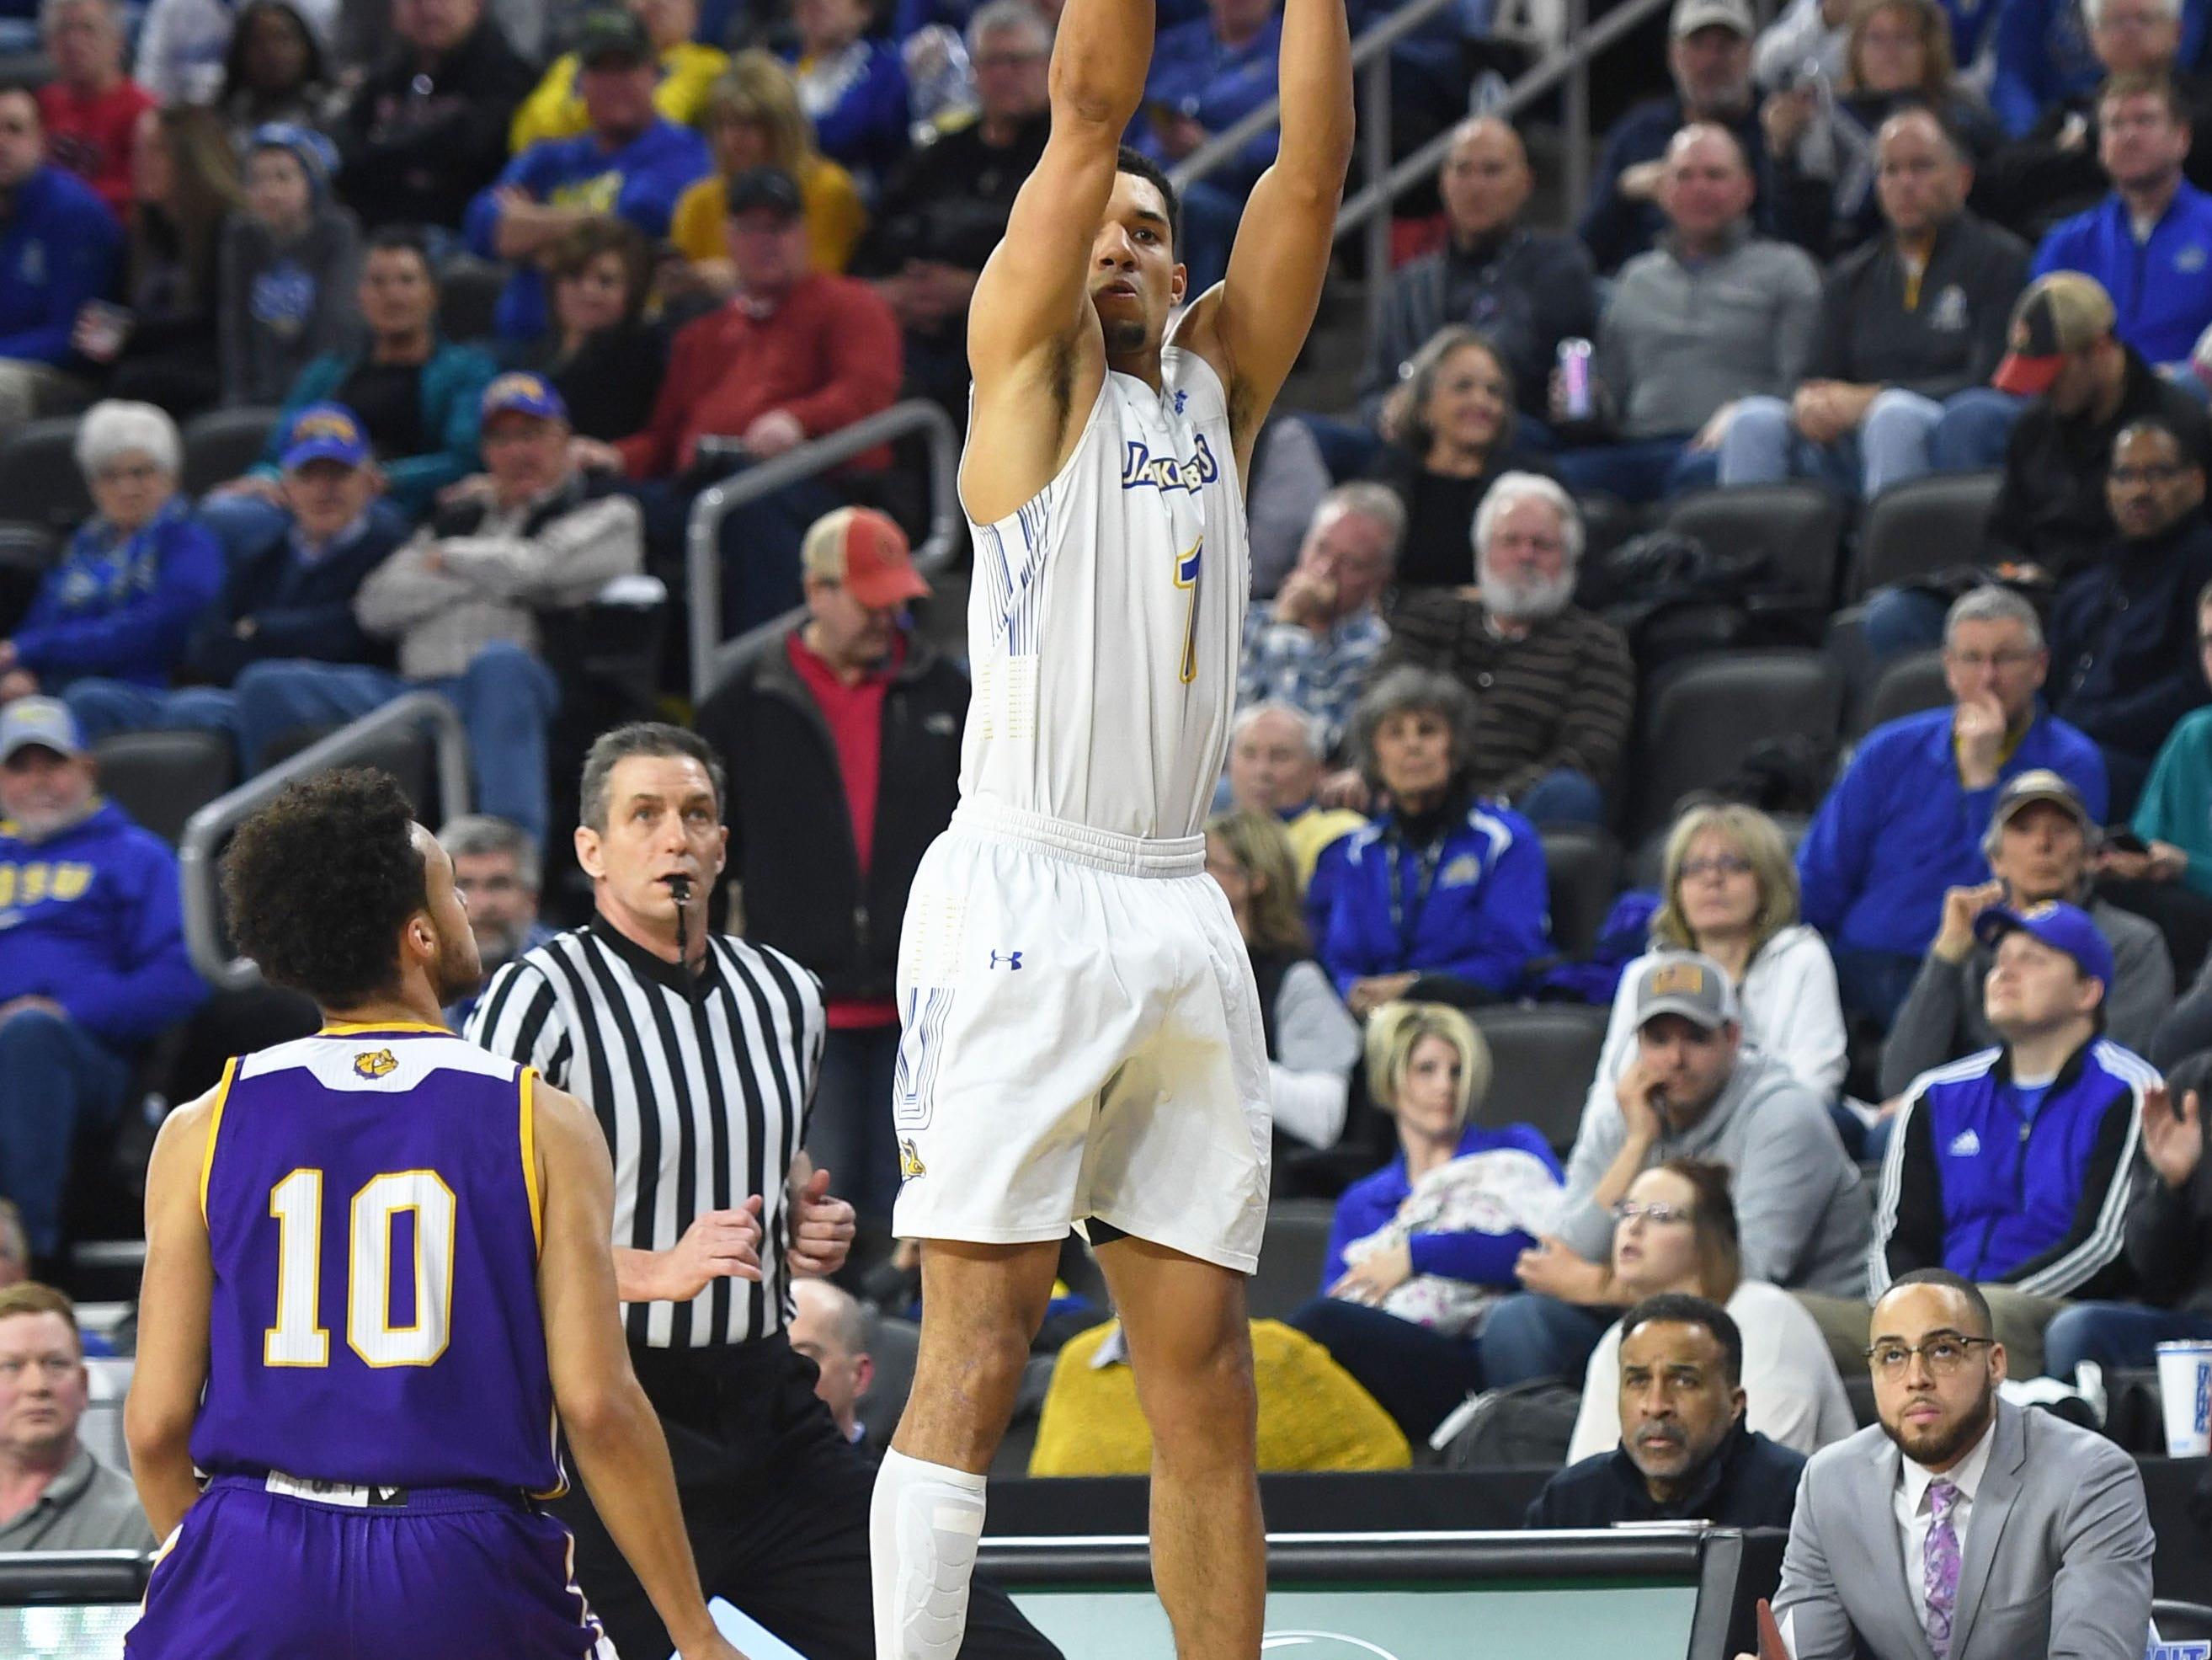 SDSU's Skyler Flatten attempts a three pointer during the game against Western Illinois Saturday, March 9, in the Summit League tournament at the Denny Sanford Premier Center in Sioux Falls.